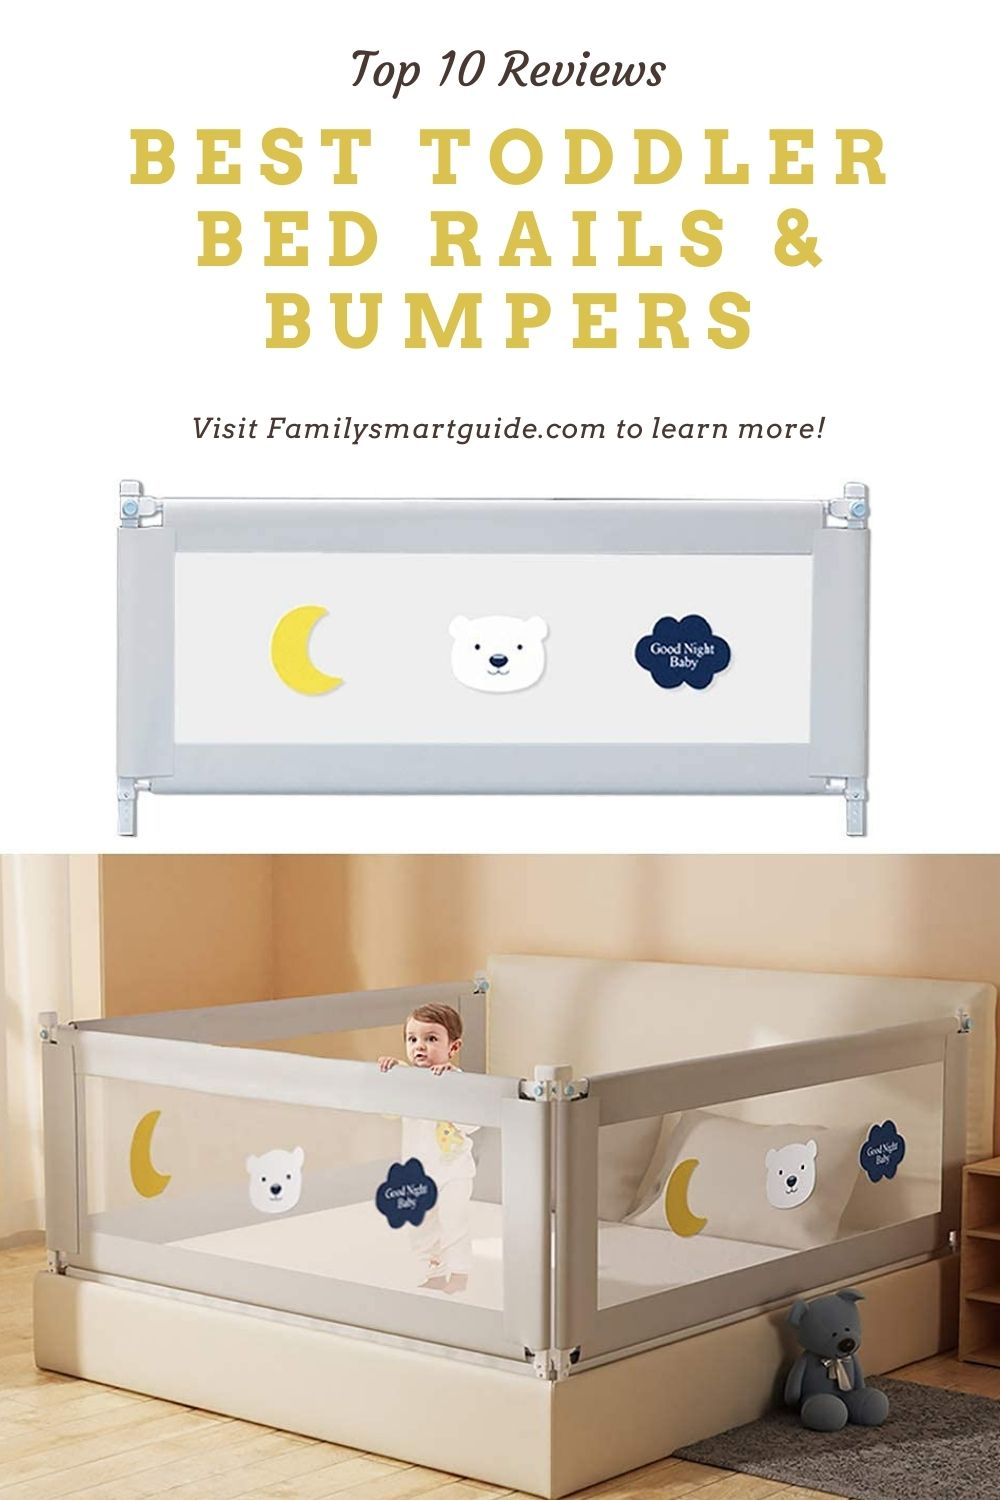 Top 10 Best Toddler Bed Rails & Bumpers